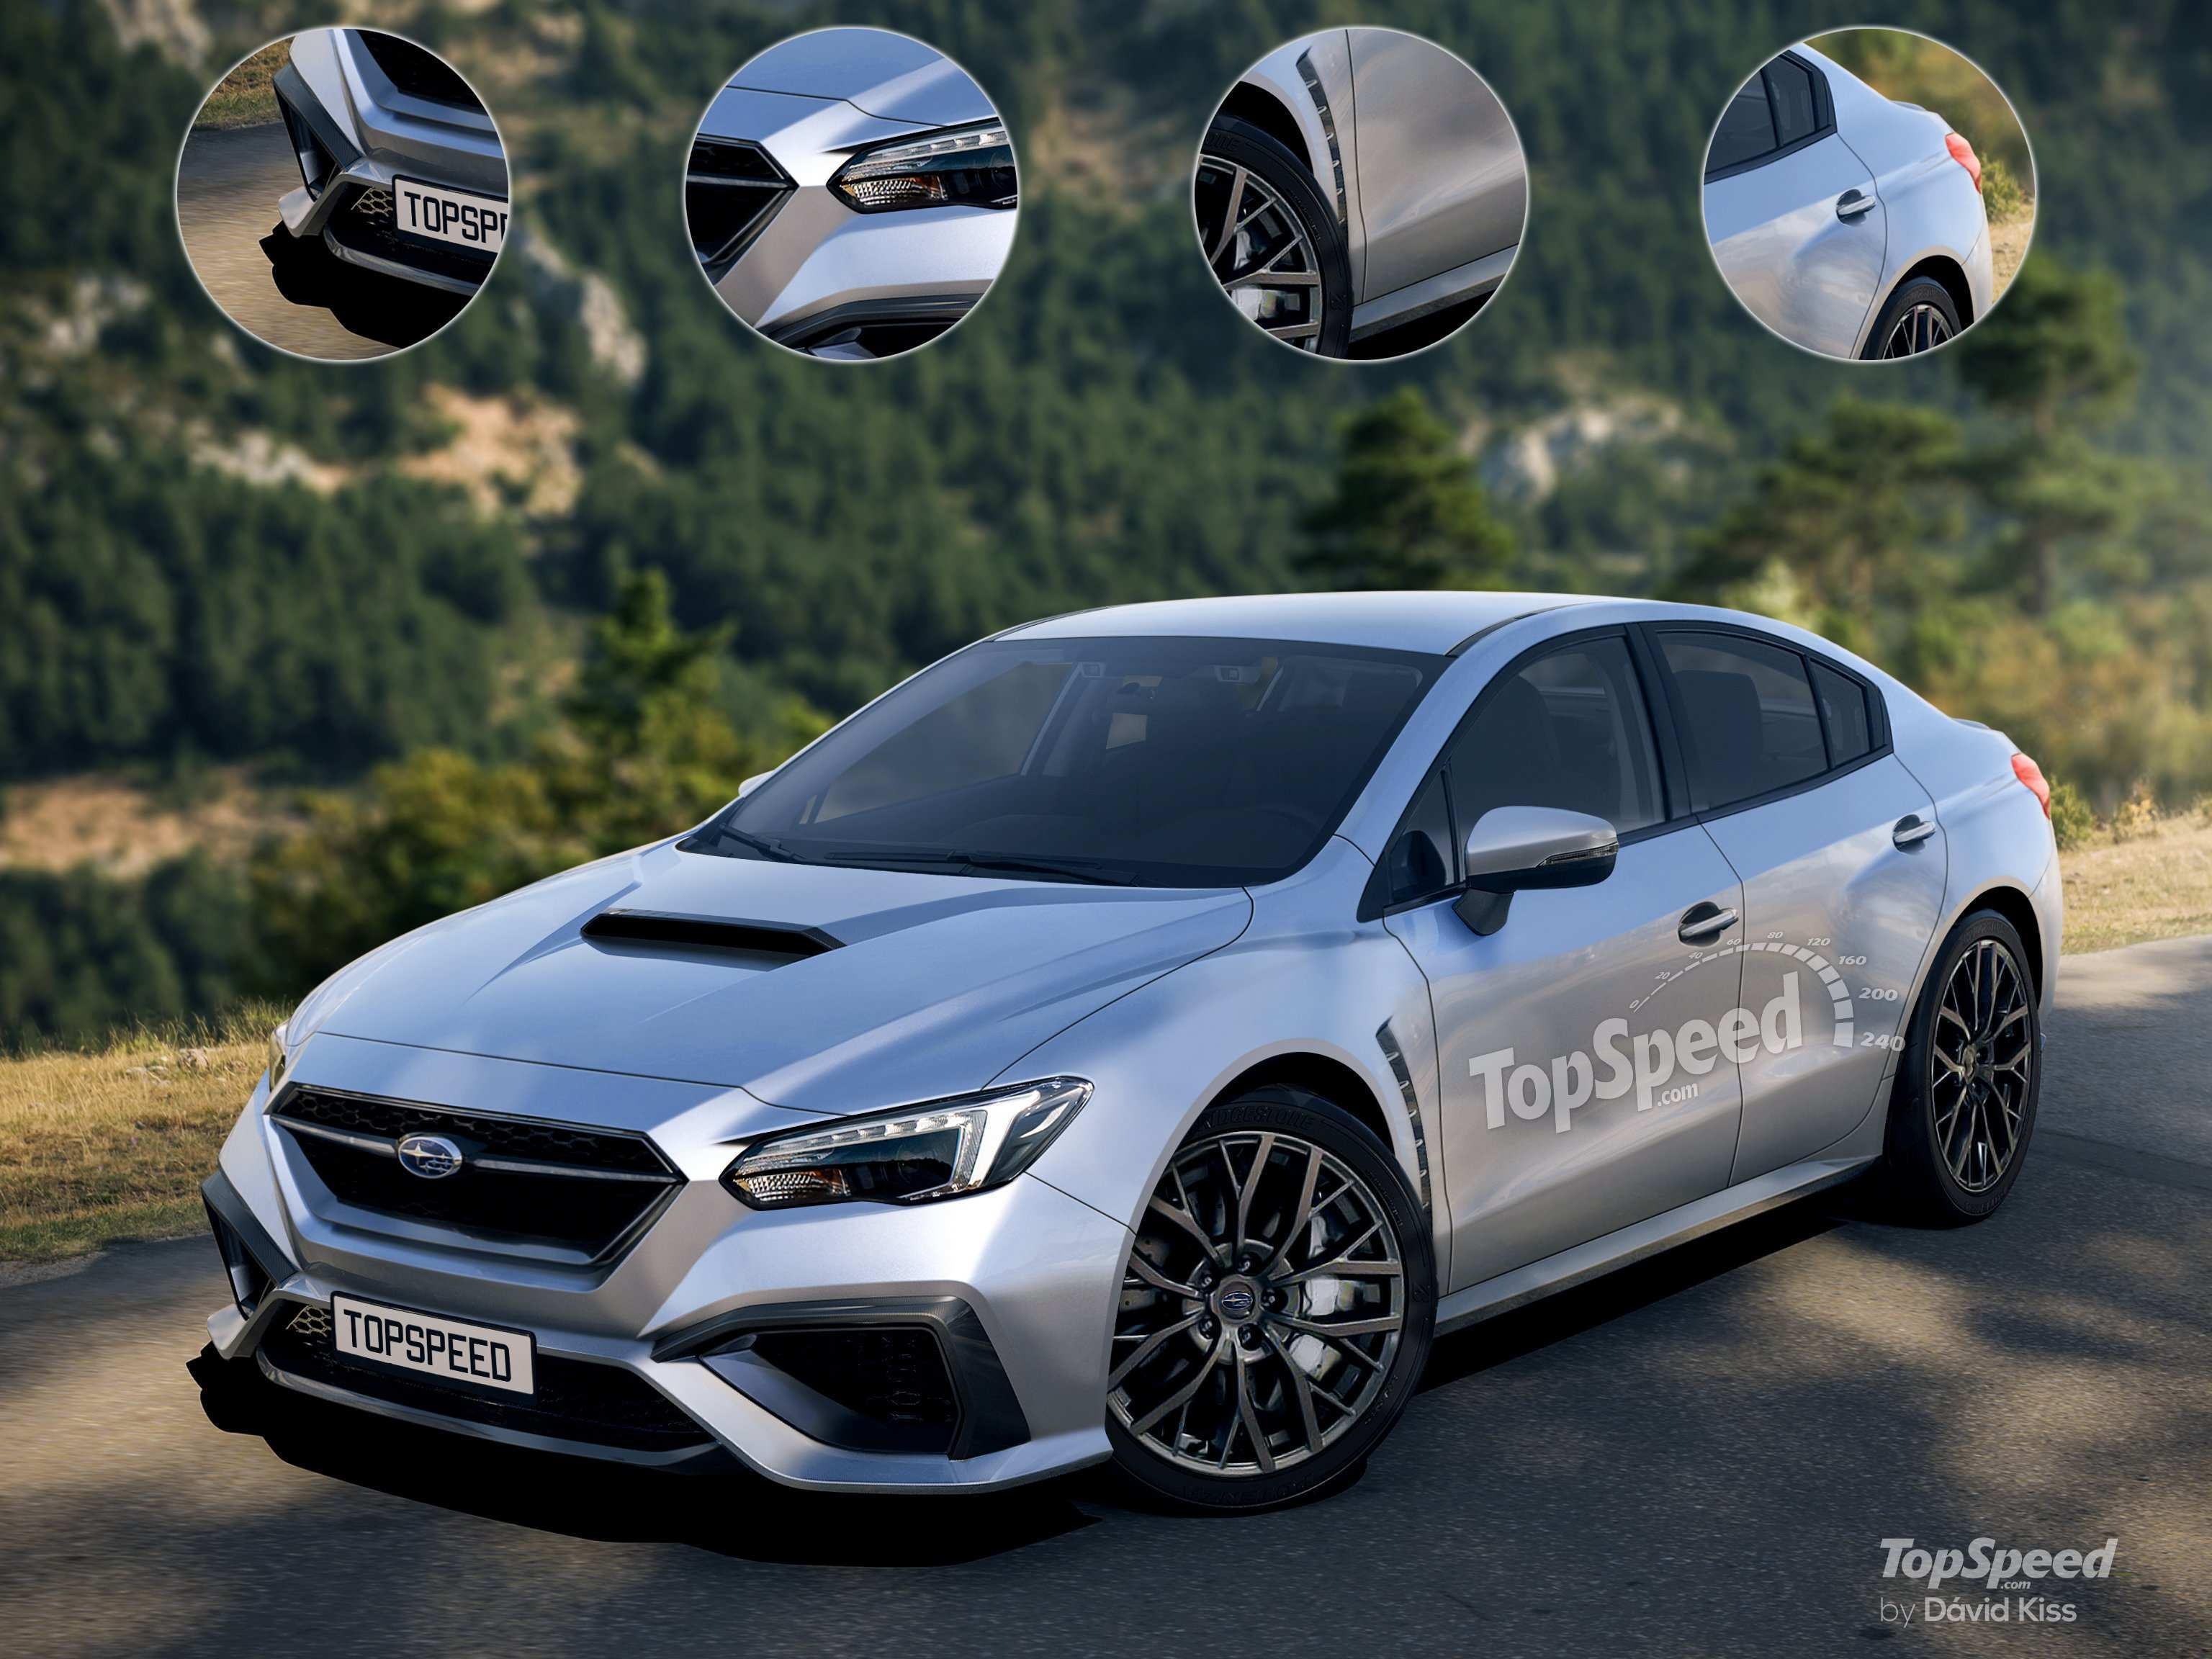 57 Gallery of Subaru Concept 2020 Ratings with Subaru Concept 2020